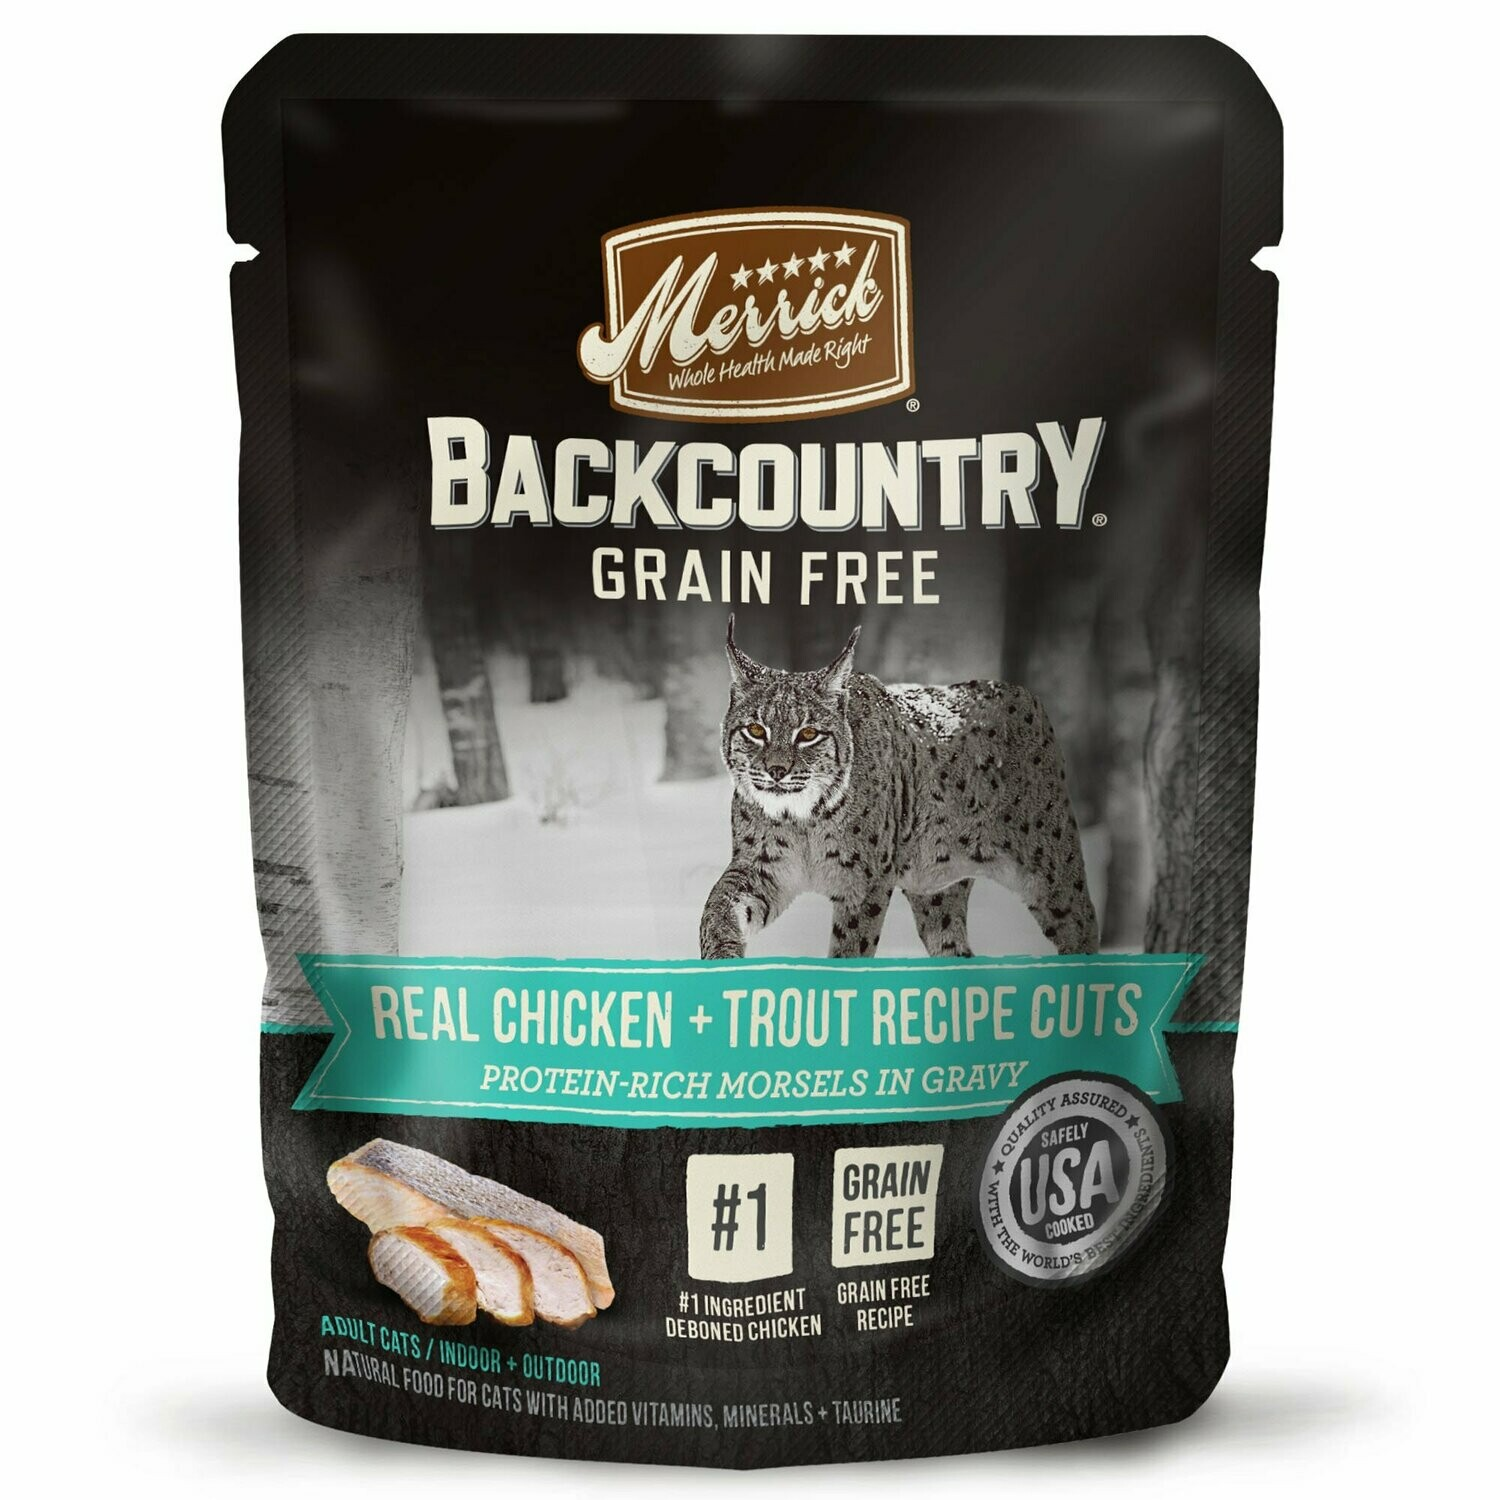 **BOGO** Merrick Backcountry Grain-Free Real Chicken & Trout Recipe Cuts Wet Cat Food 3 oz 24 count (3/19)